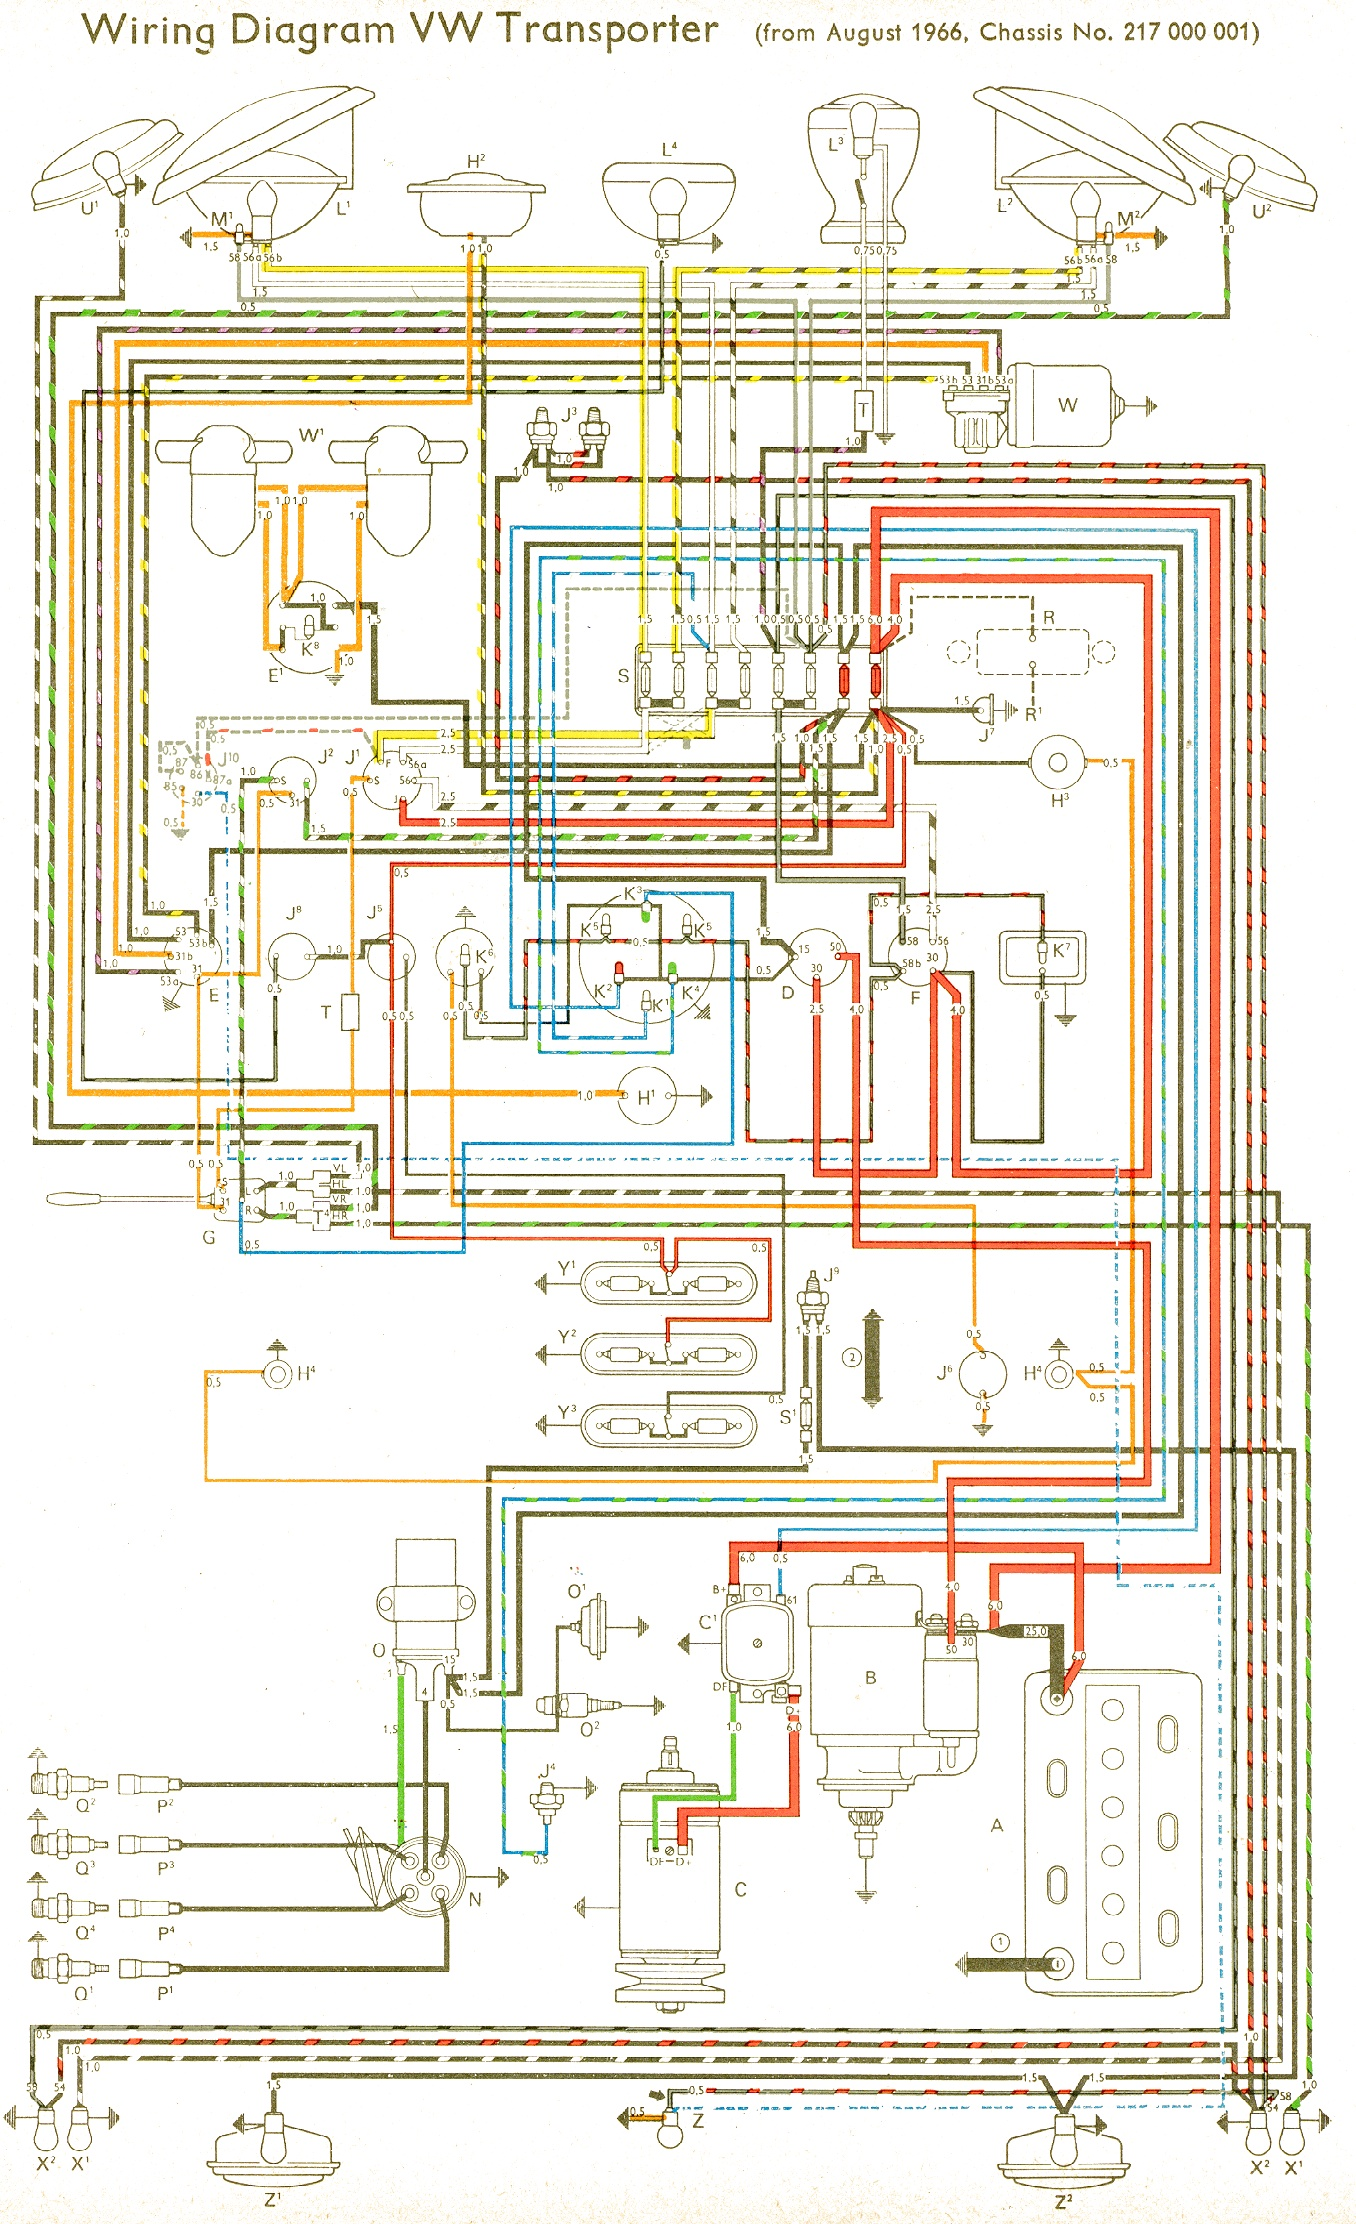 bus 66 bus wiring diagram vw wiring harness diagram \u2022 wiring diagrams j 1971 vw bus wiring diagram at mifinder.co